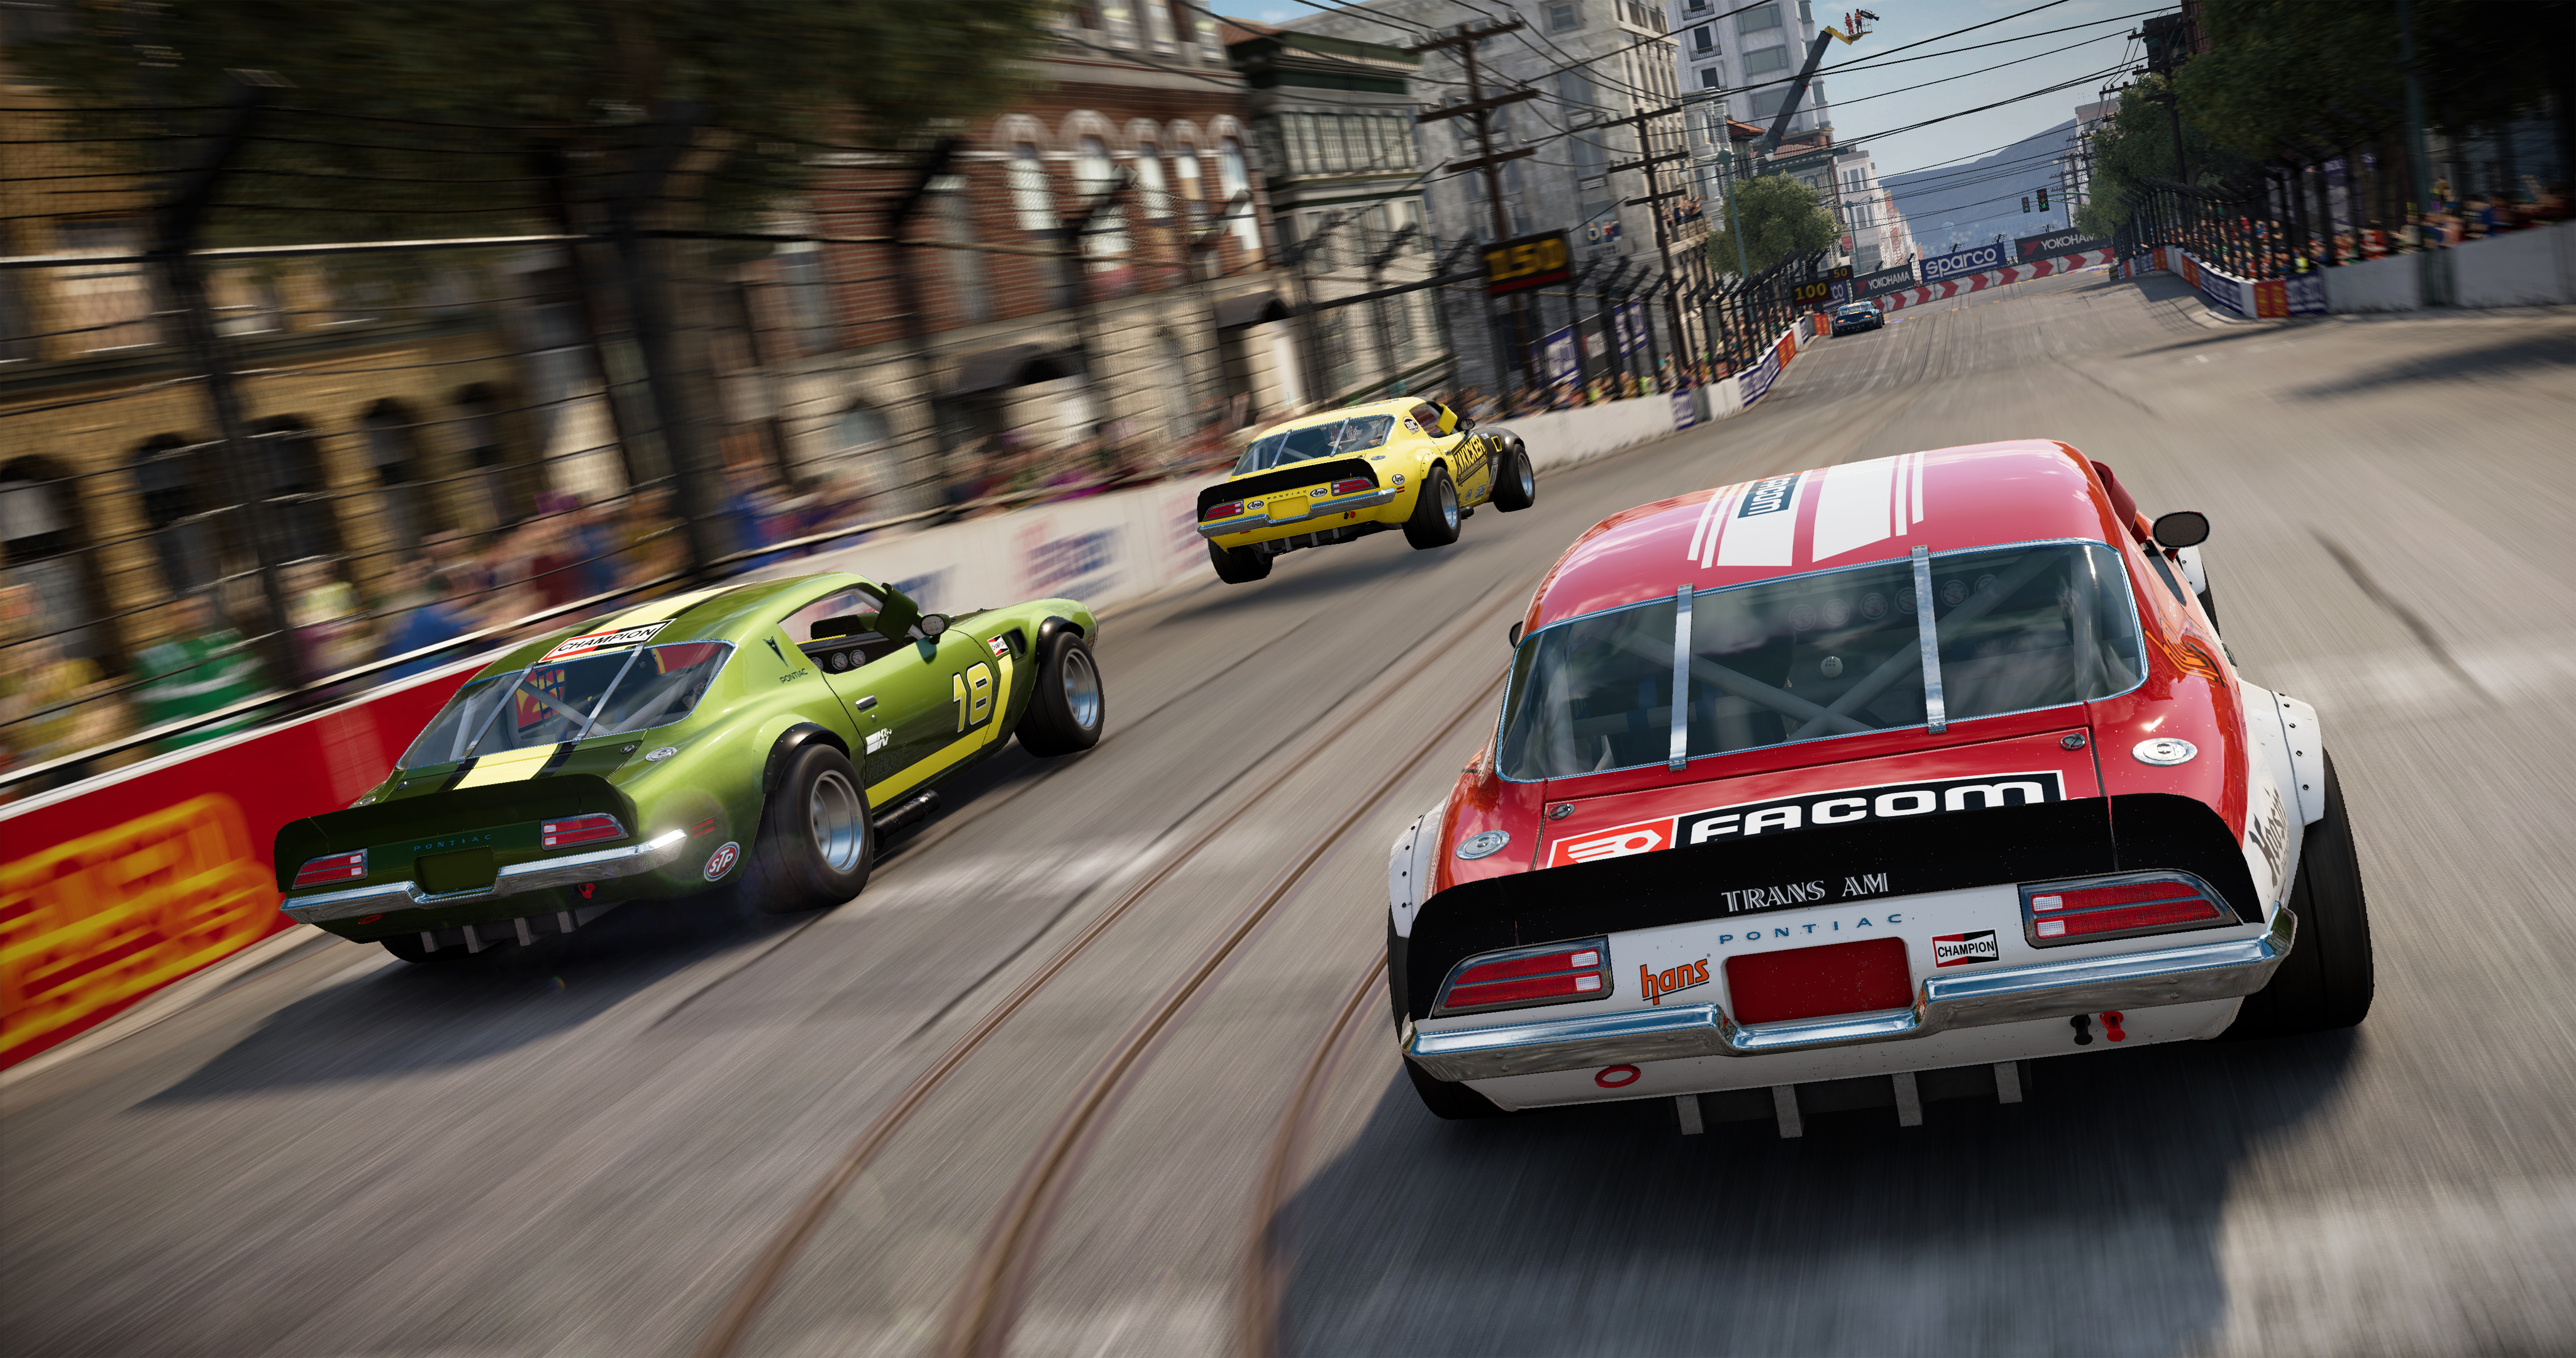 GRID Preview - Rebooting the Racer with a Push in Exceptional AI